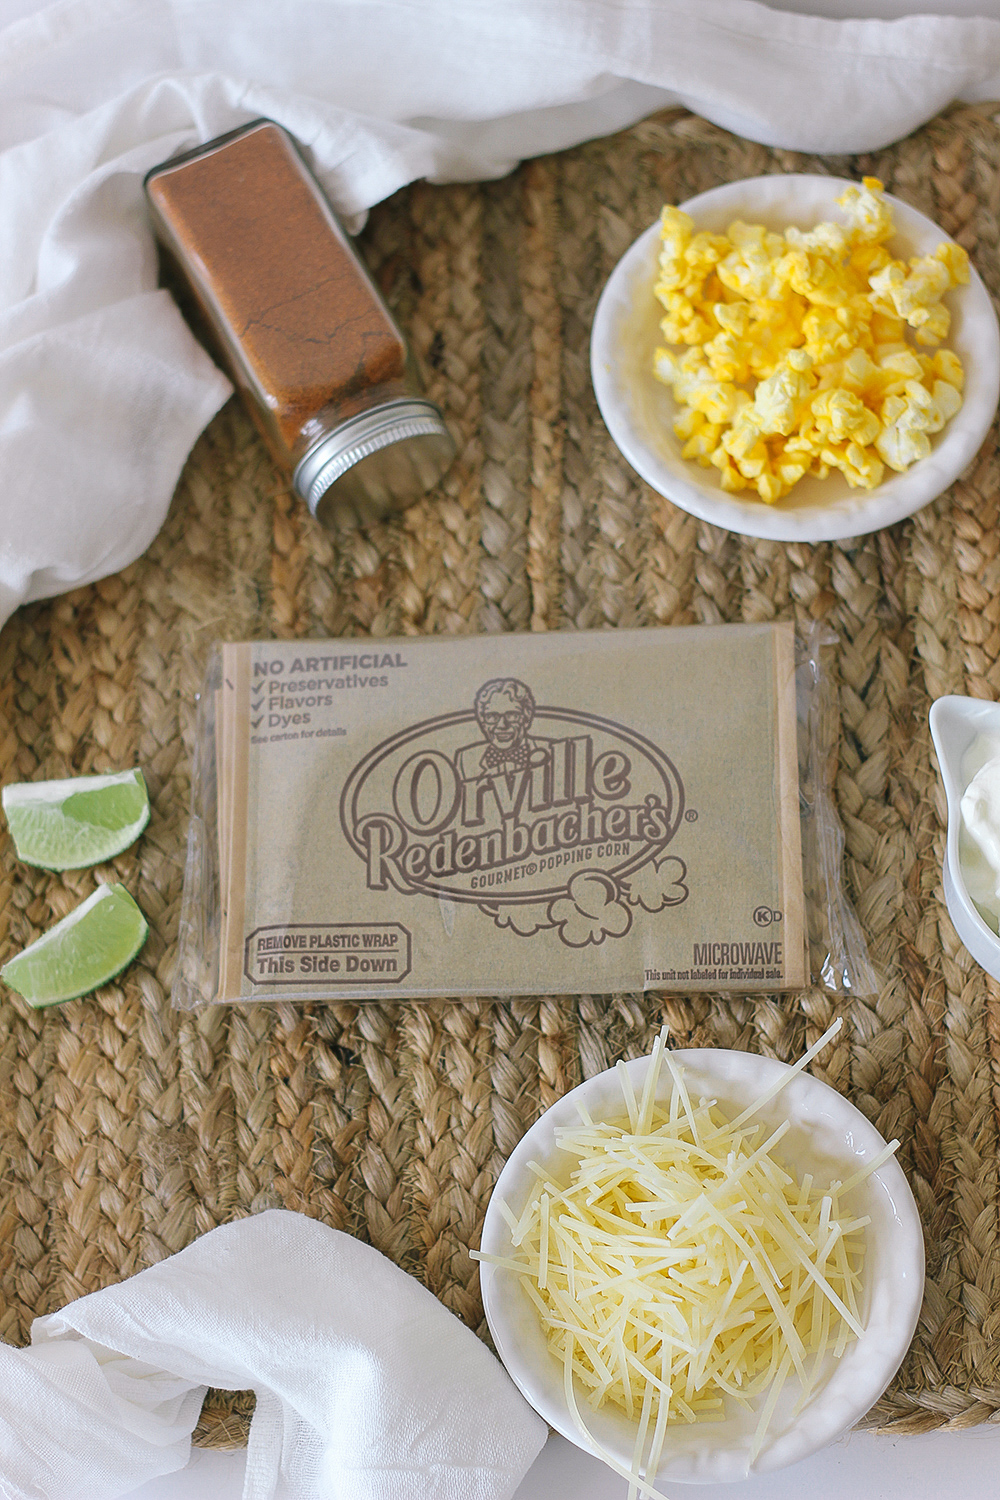 The perfect game day snack with Orville Redenbacher popcorn. #gameday #football #snack #popcorn